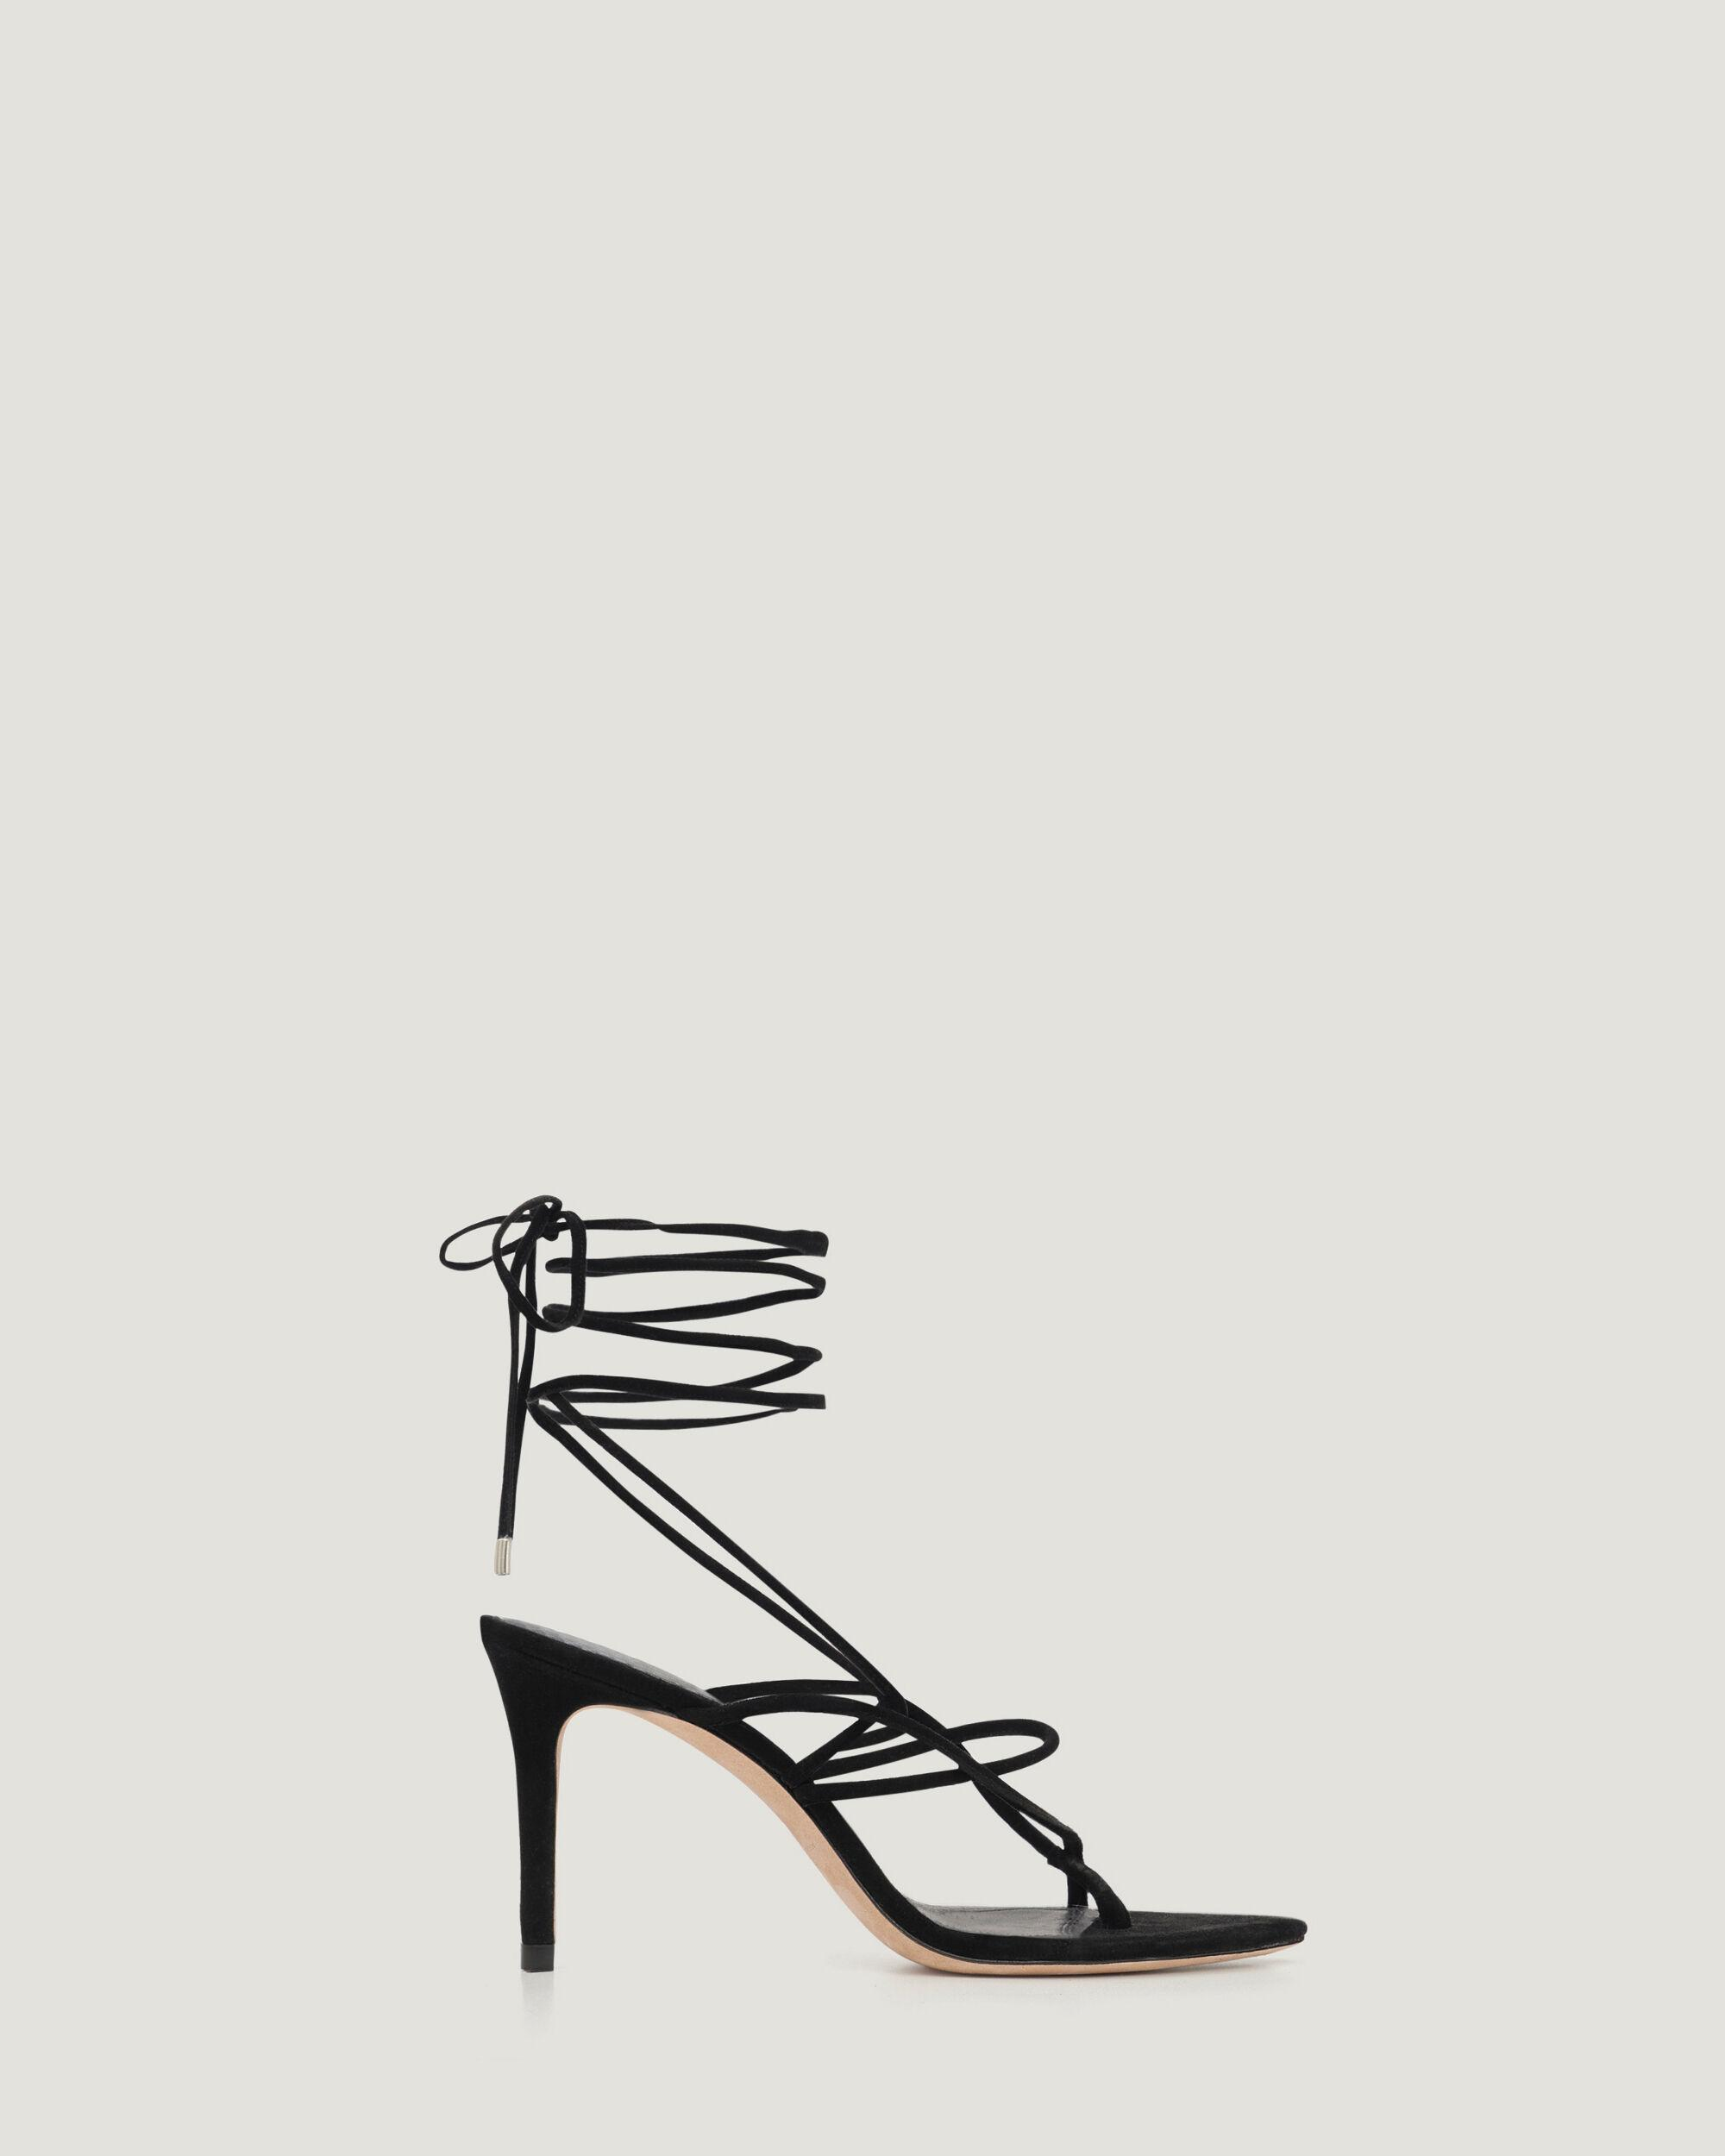 THEMIS LACE UP SUEDE HEELED SANDALS